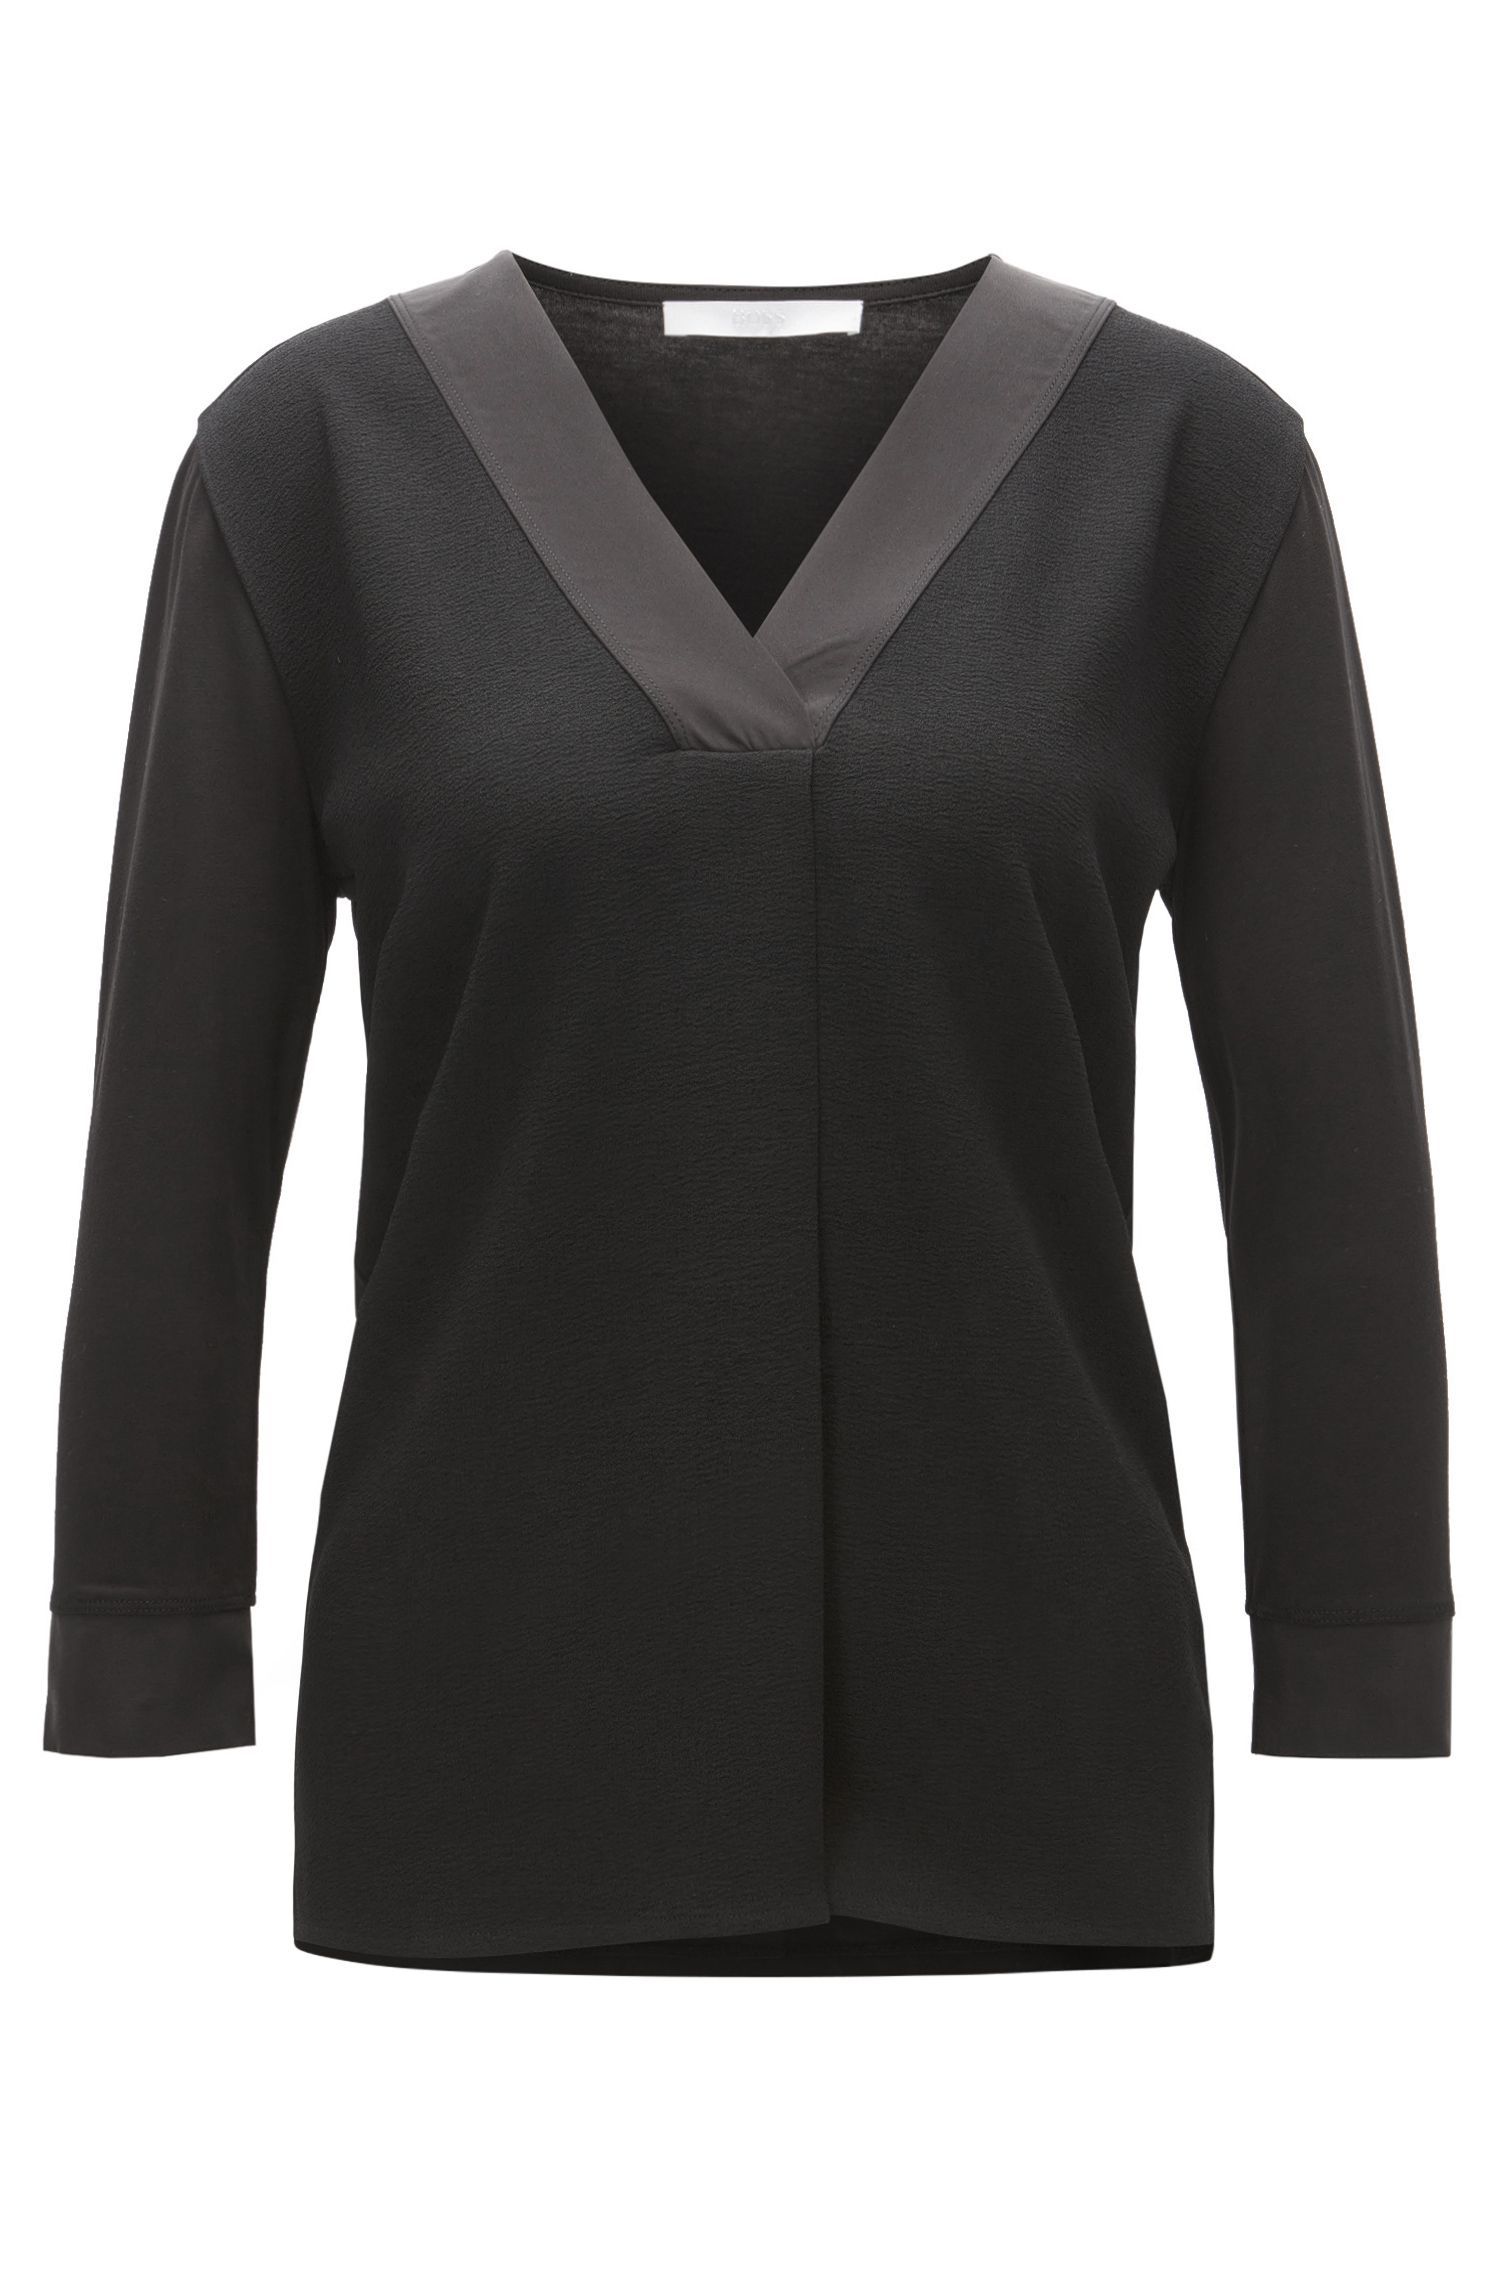 Tunic-style top with structured front panel and silk trims